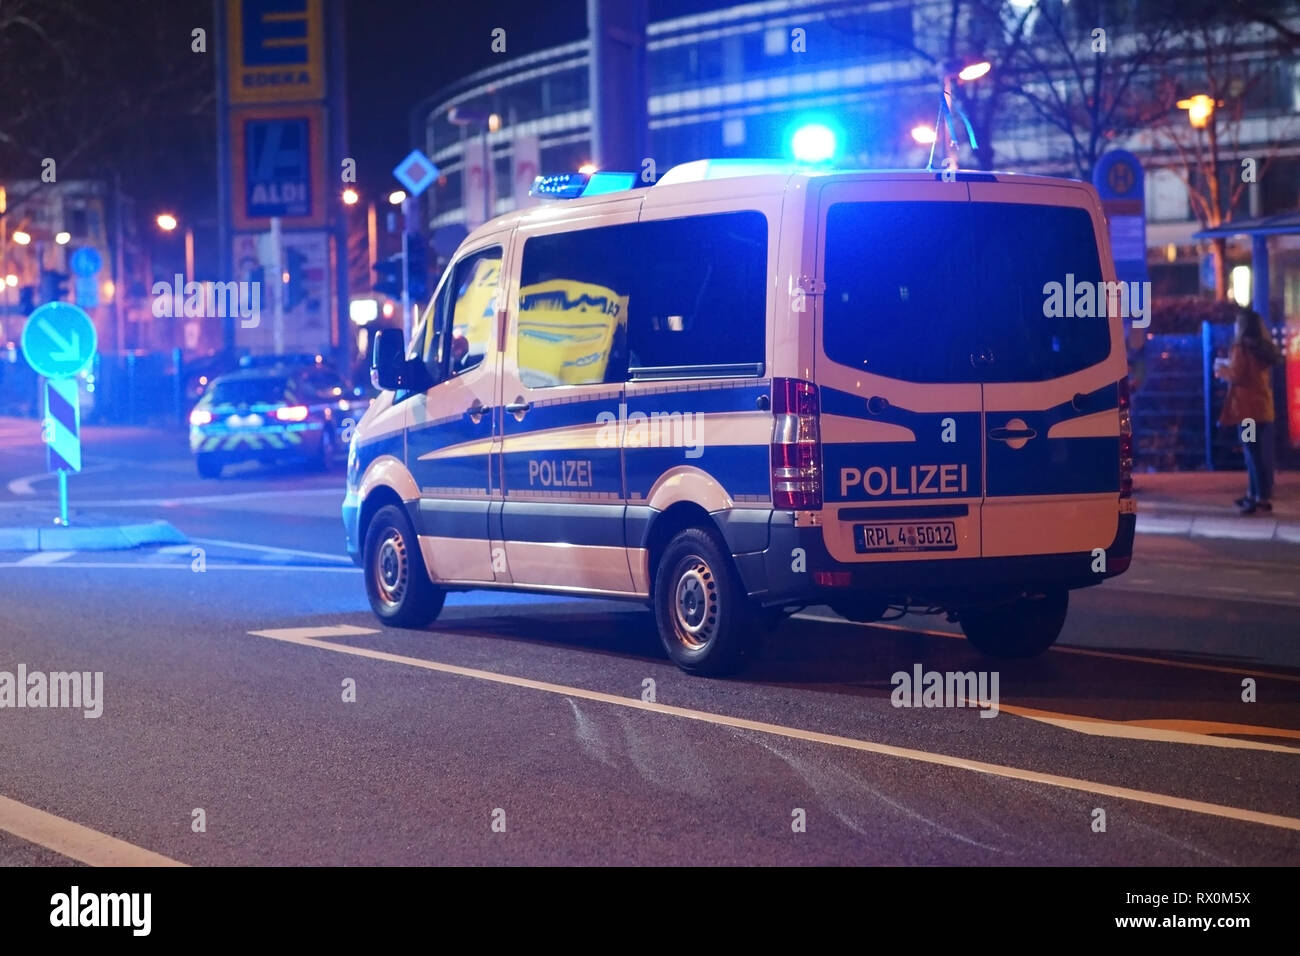 Mainz, Germany - March 01, 2019: A police car with a siren and blue lights is blocking the street after a regional football match on March 01, 2019 in - Stock Image